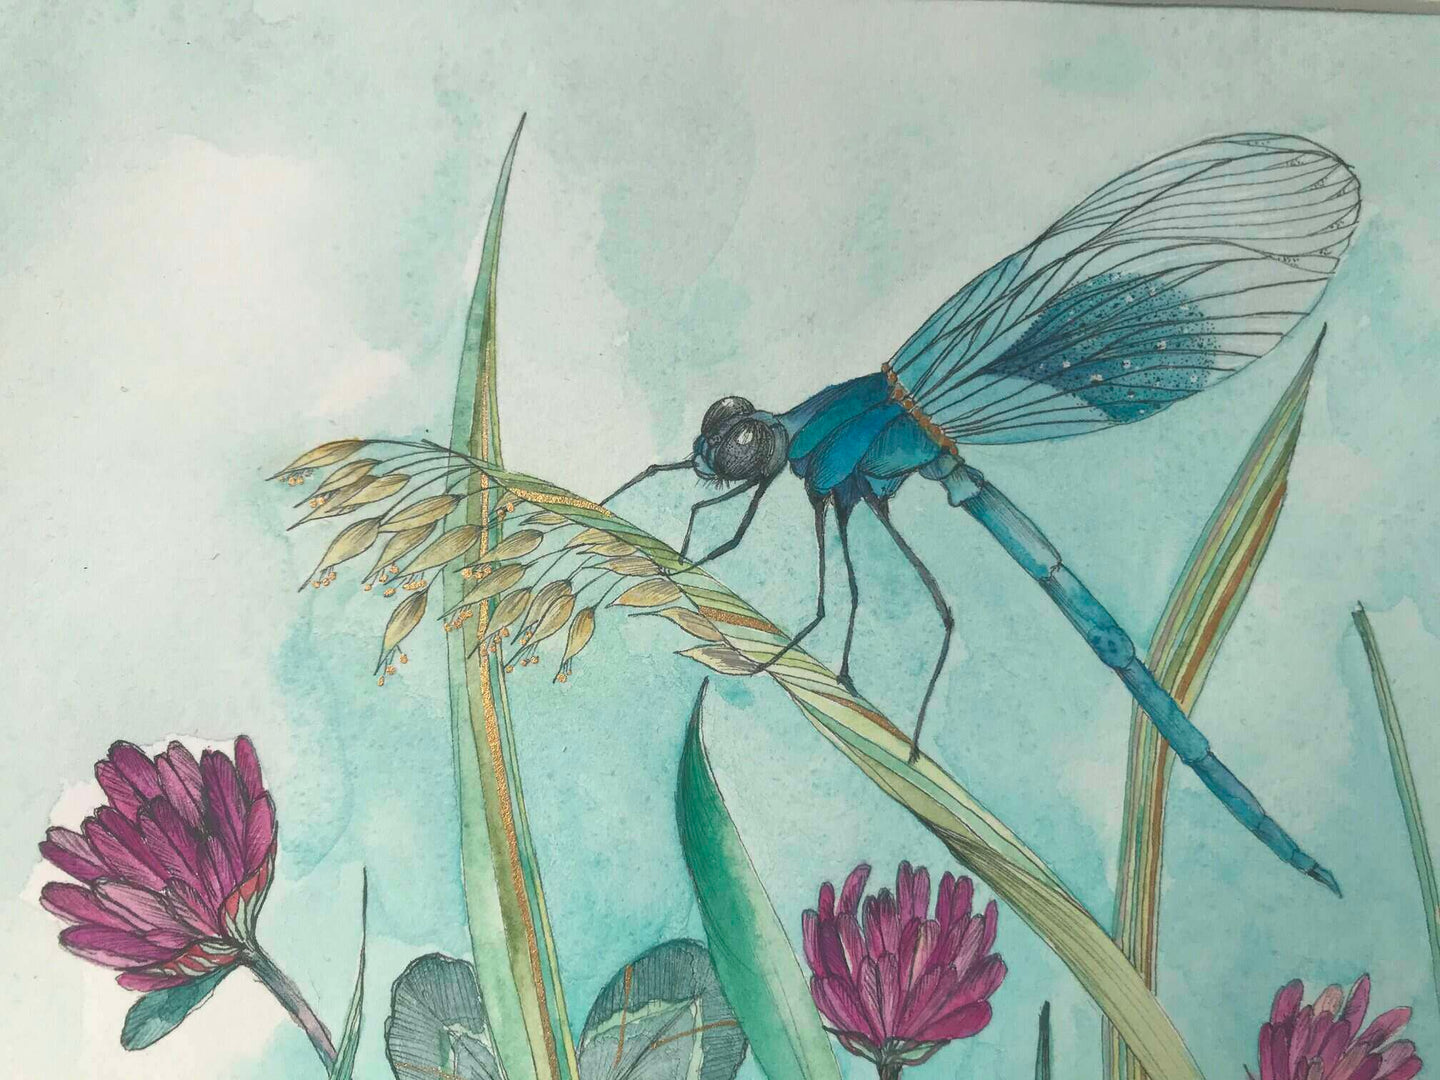 Watercolor Painting of Teal Damselfly sitting on a blade of grass surrounded by Red Clover